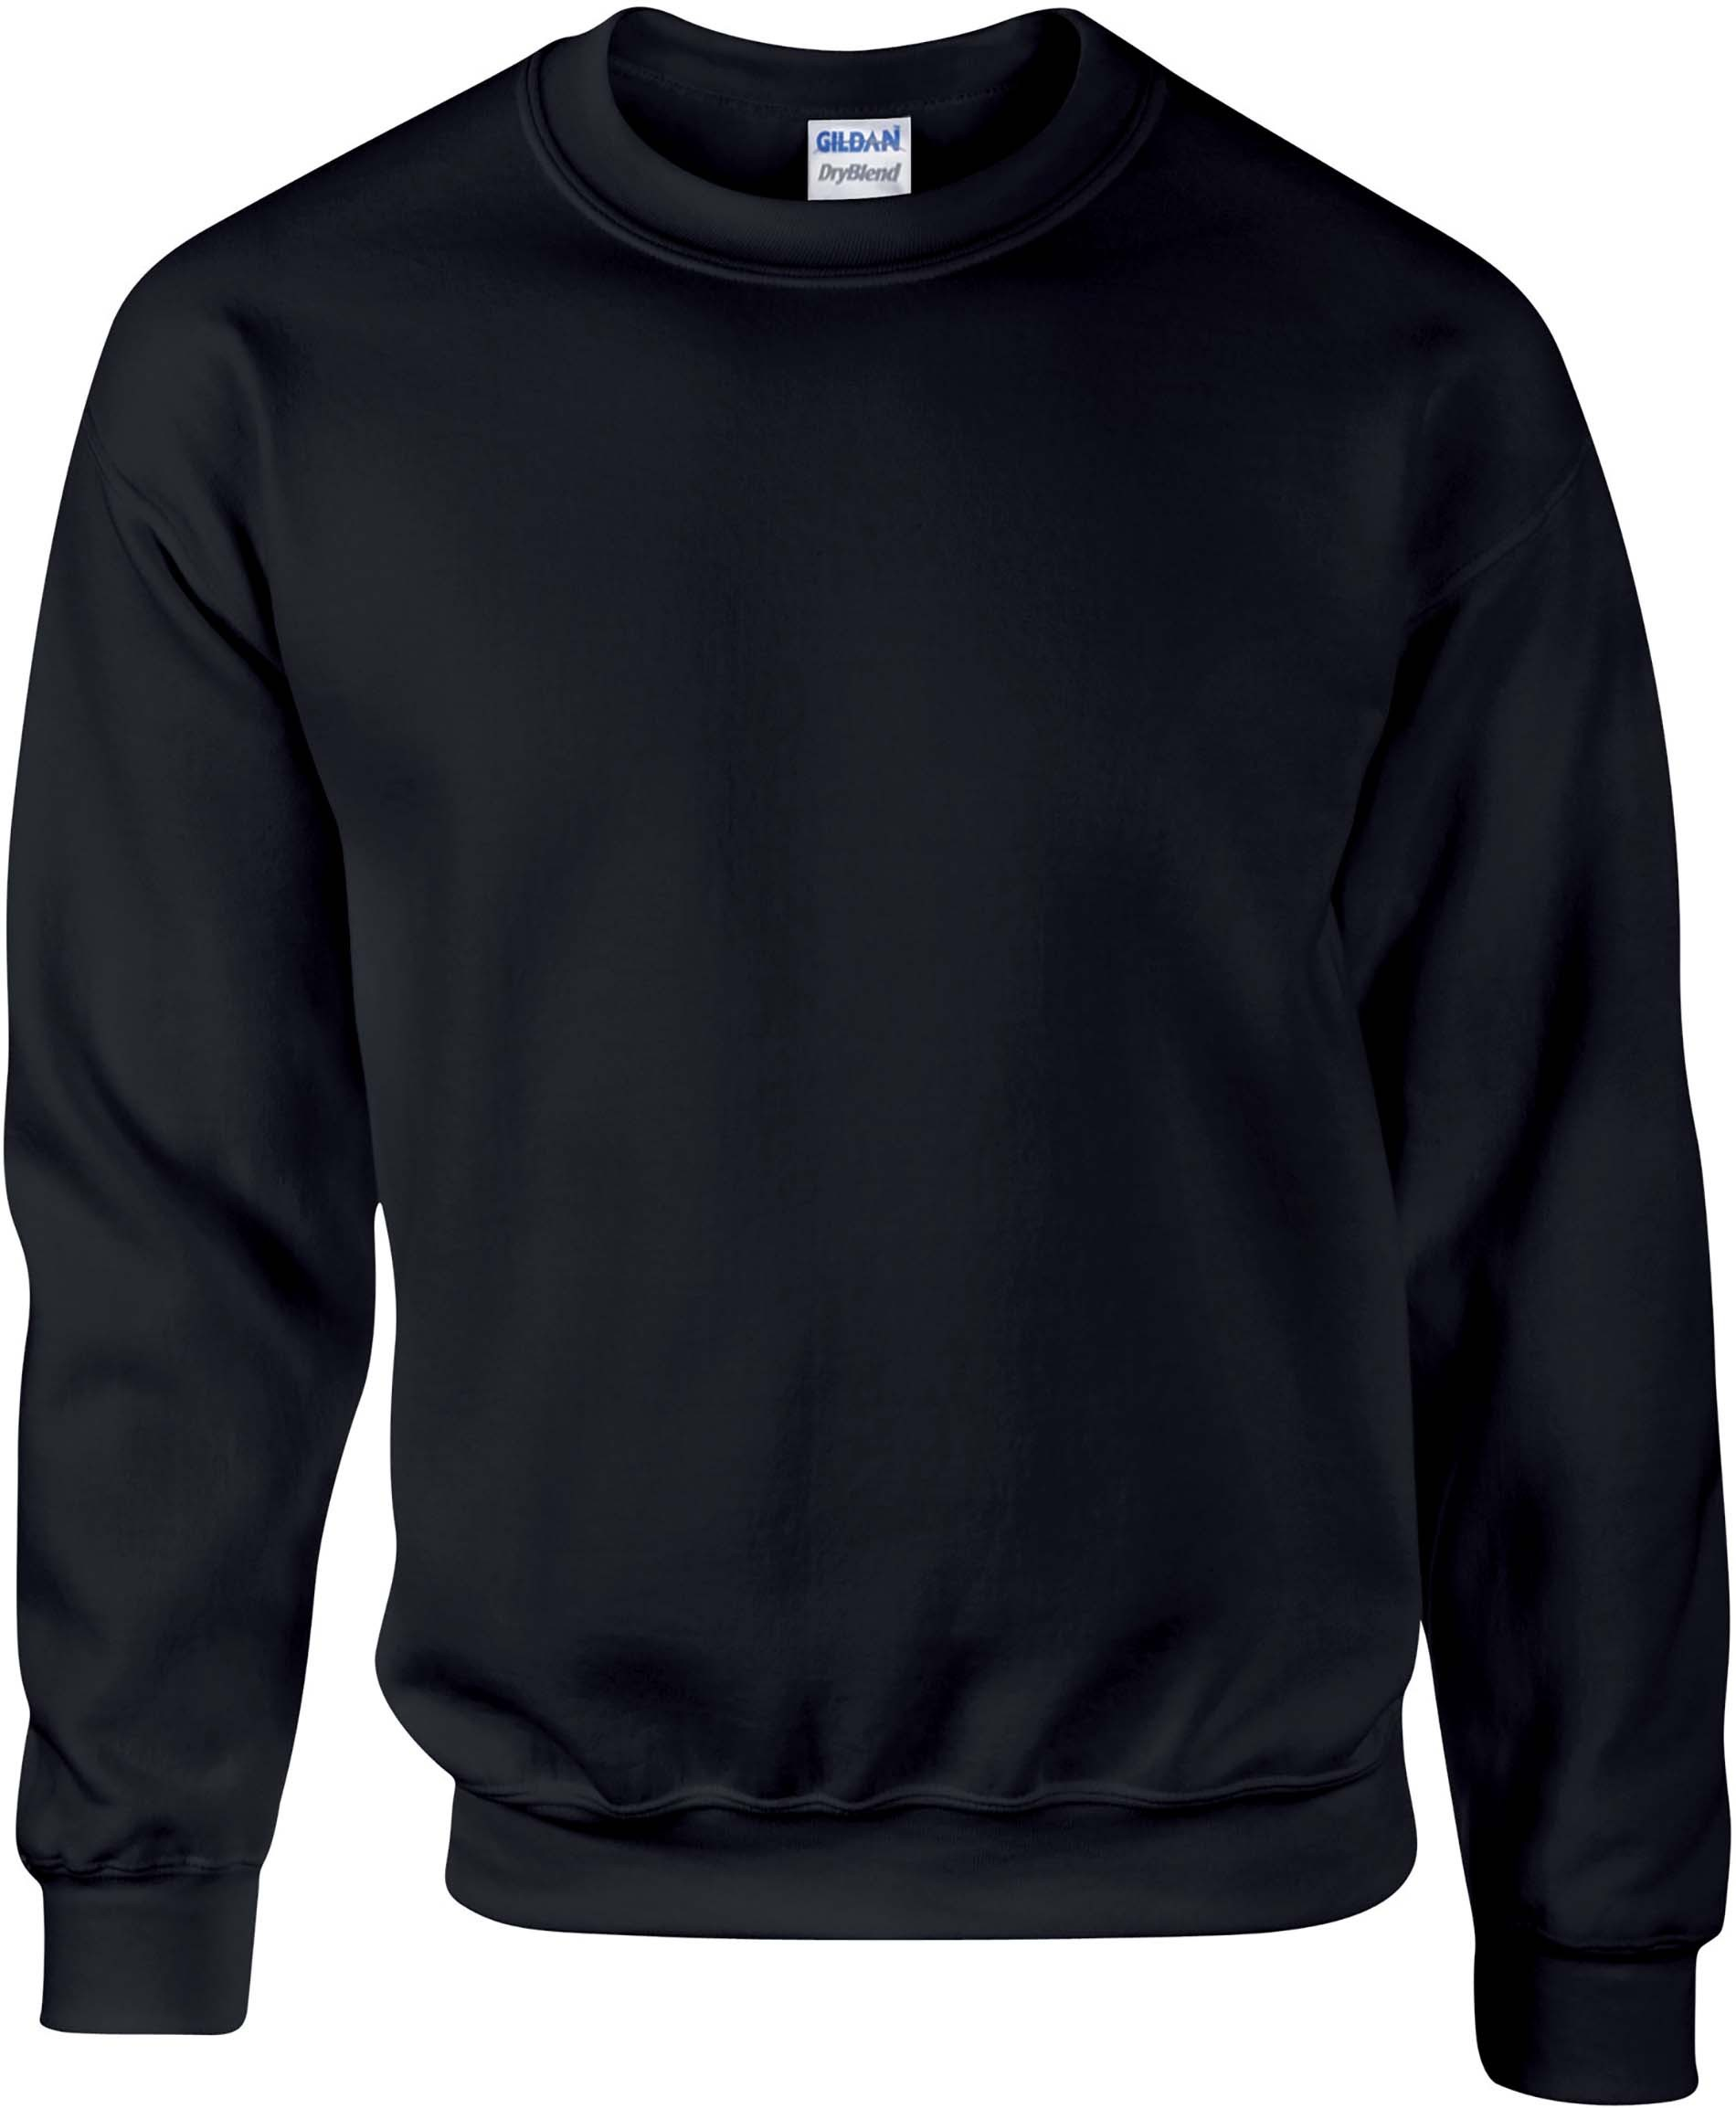 Dryblend Adult Sweatshirt